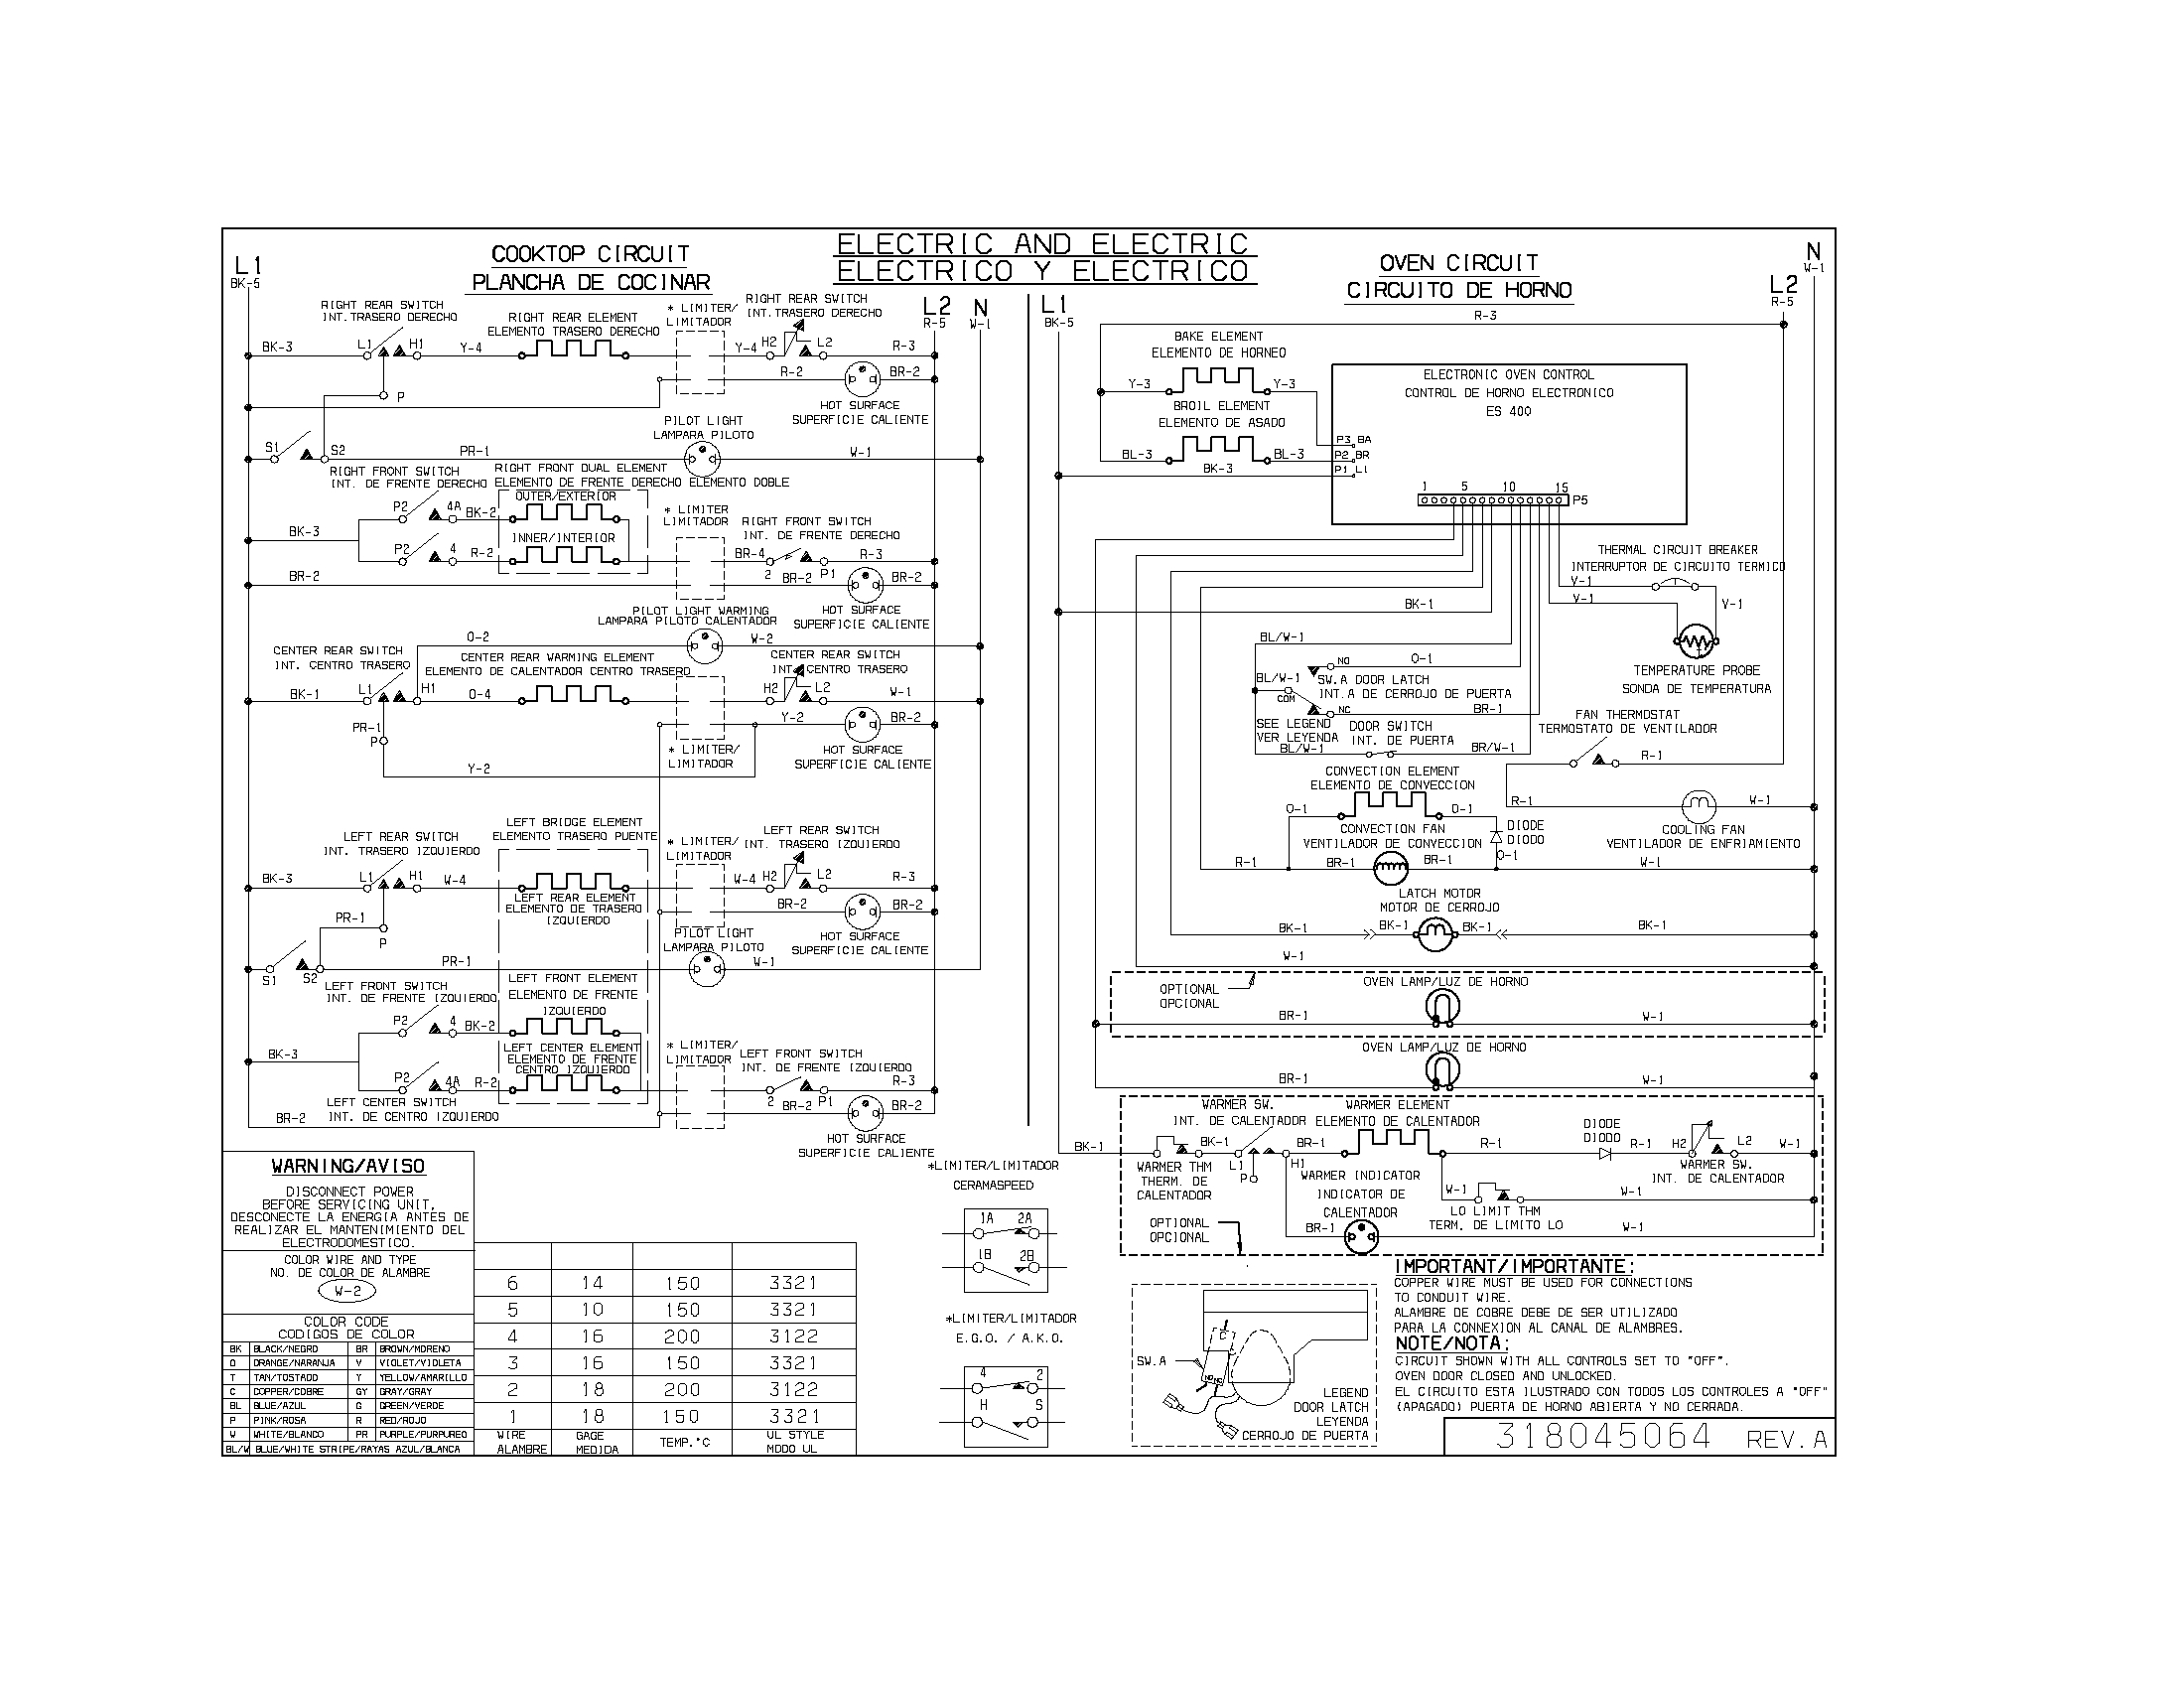 kenmore dishwasher wiring diagram to wiring diagram parts in kenmore 90 series dryer parts diagram?resize=665%2C514&ssl=1 smeg oven wiring diagram wiring diagram smeg oven wiring diagram at soozxer.org